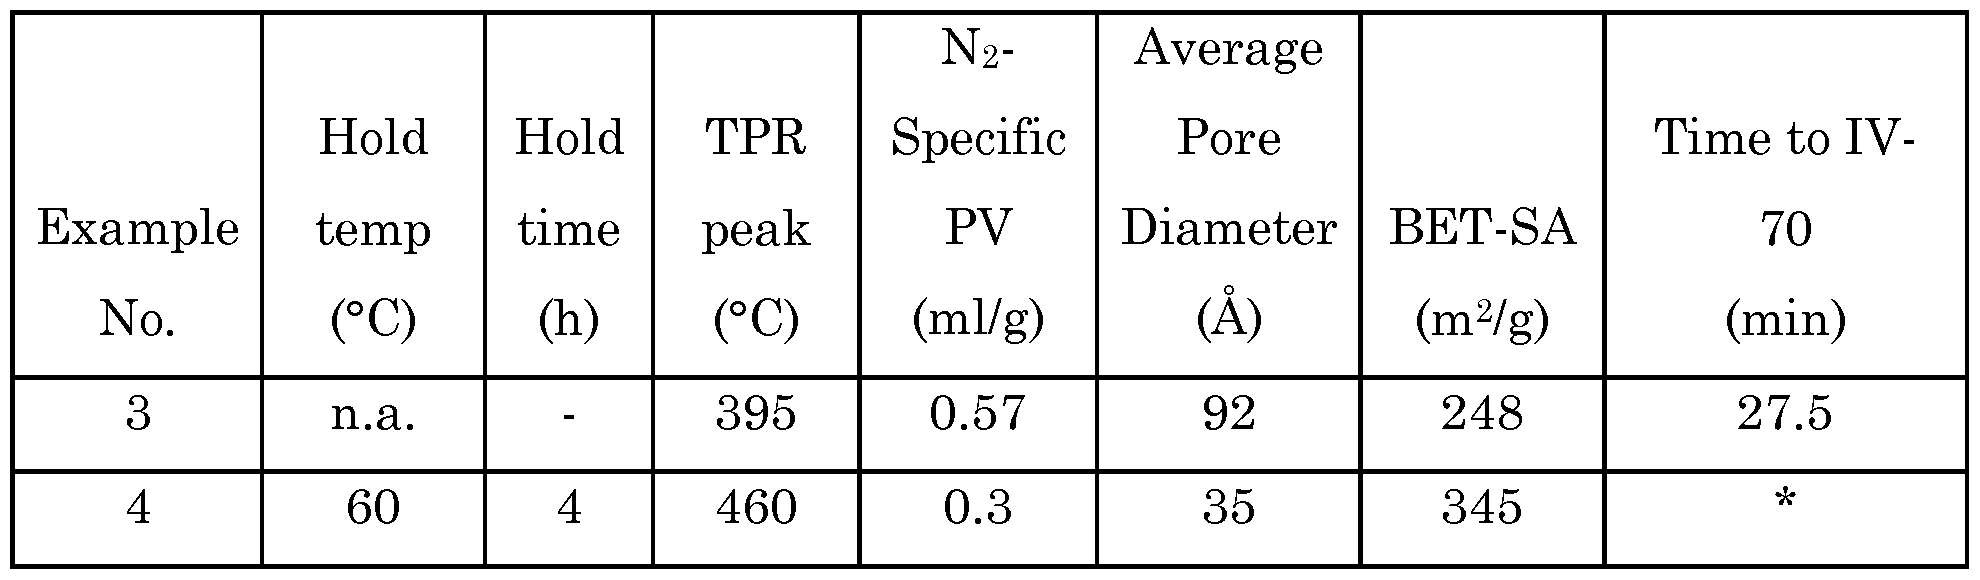 a comparison of various catalysts for preparing polymethylmethacrylate via free radical initiated po Relative advantages, disadvantages and applications are listed together with a table of typical properties.